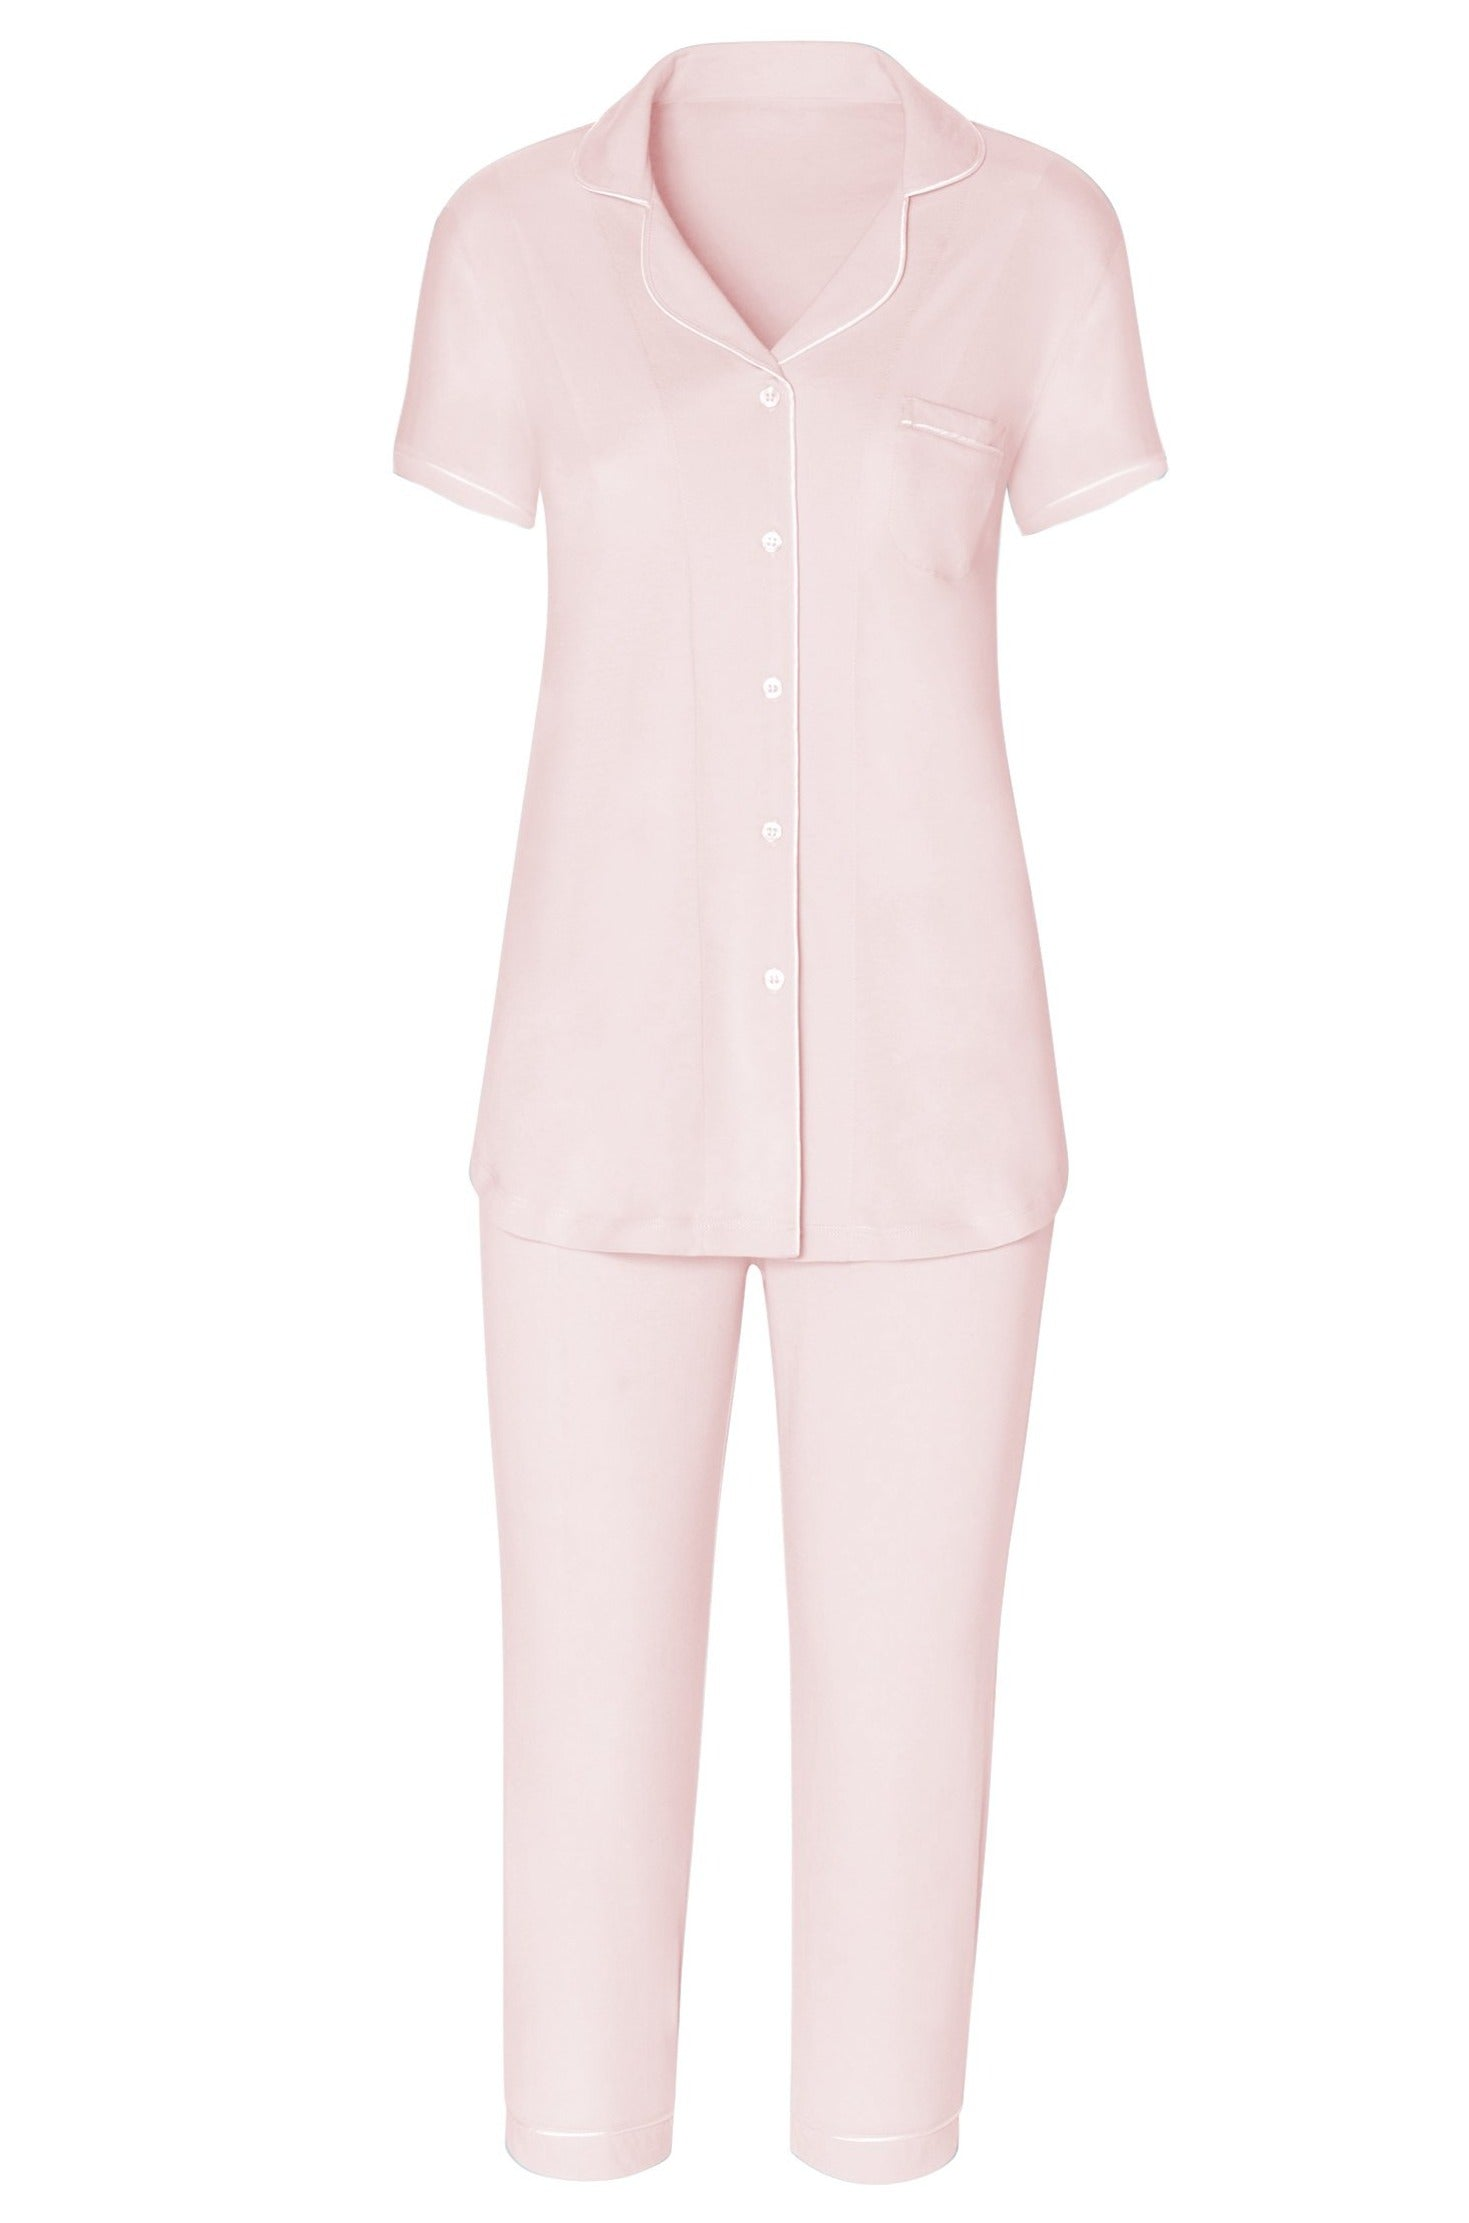 Paige Short Sleeve Cropped Pant Men's Styled PJ Set